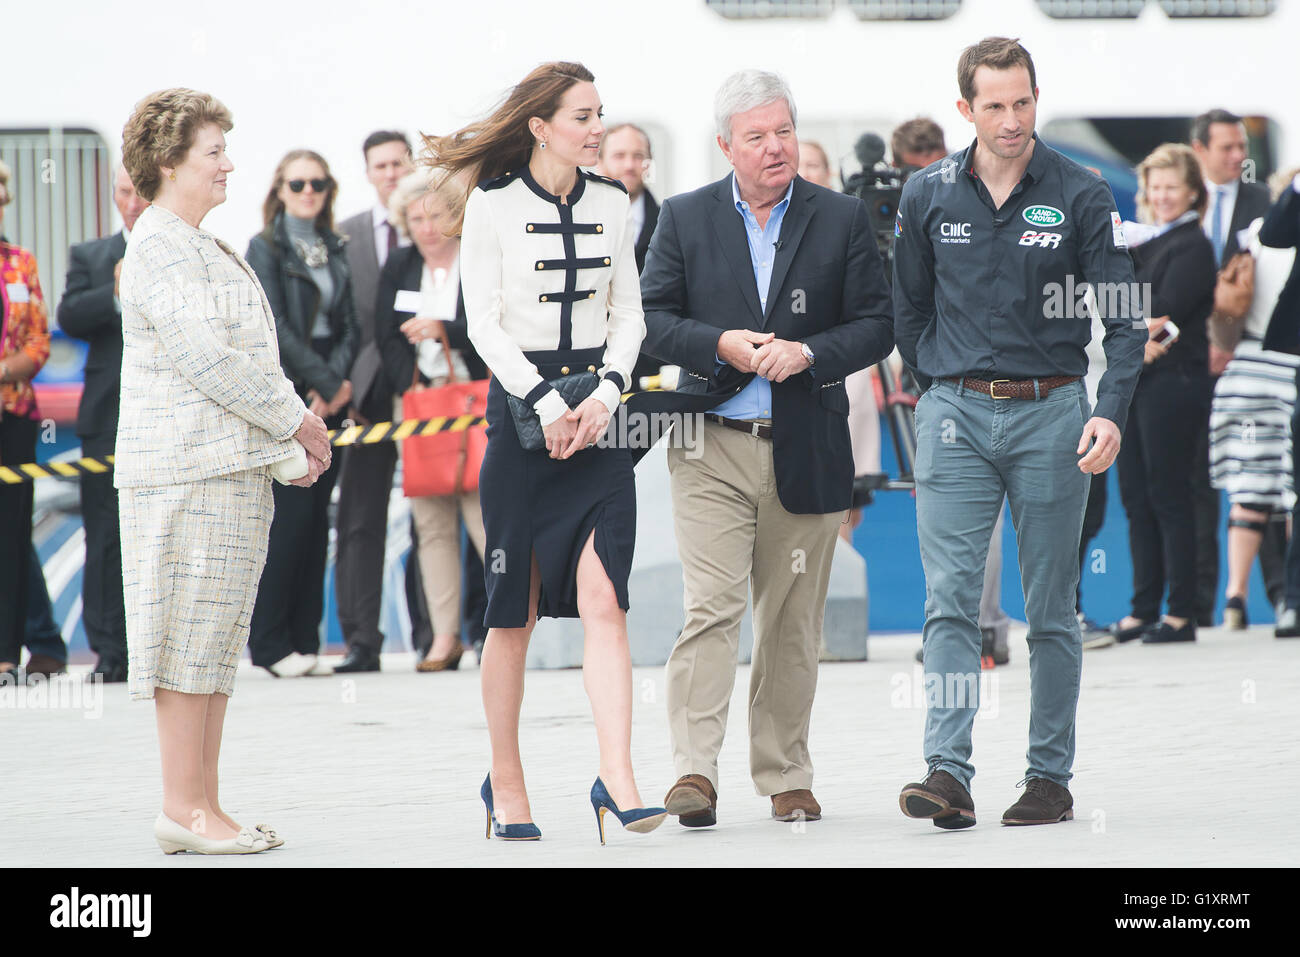 Portsmouth, UK. 20th May 2016. Duchess of Cambridge arrives at Landrover BAR and the 1851 Trust and is greeted by Stock Photo